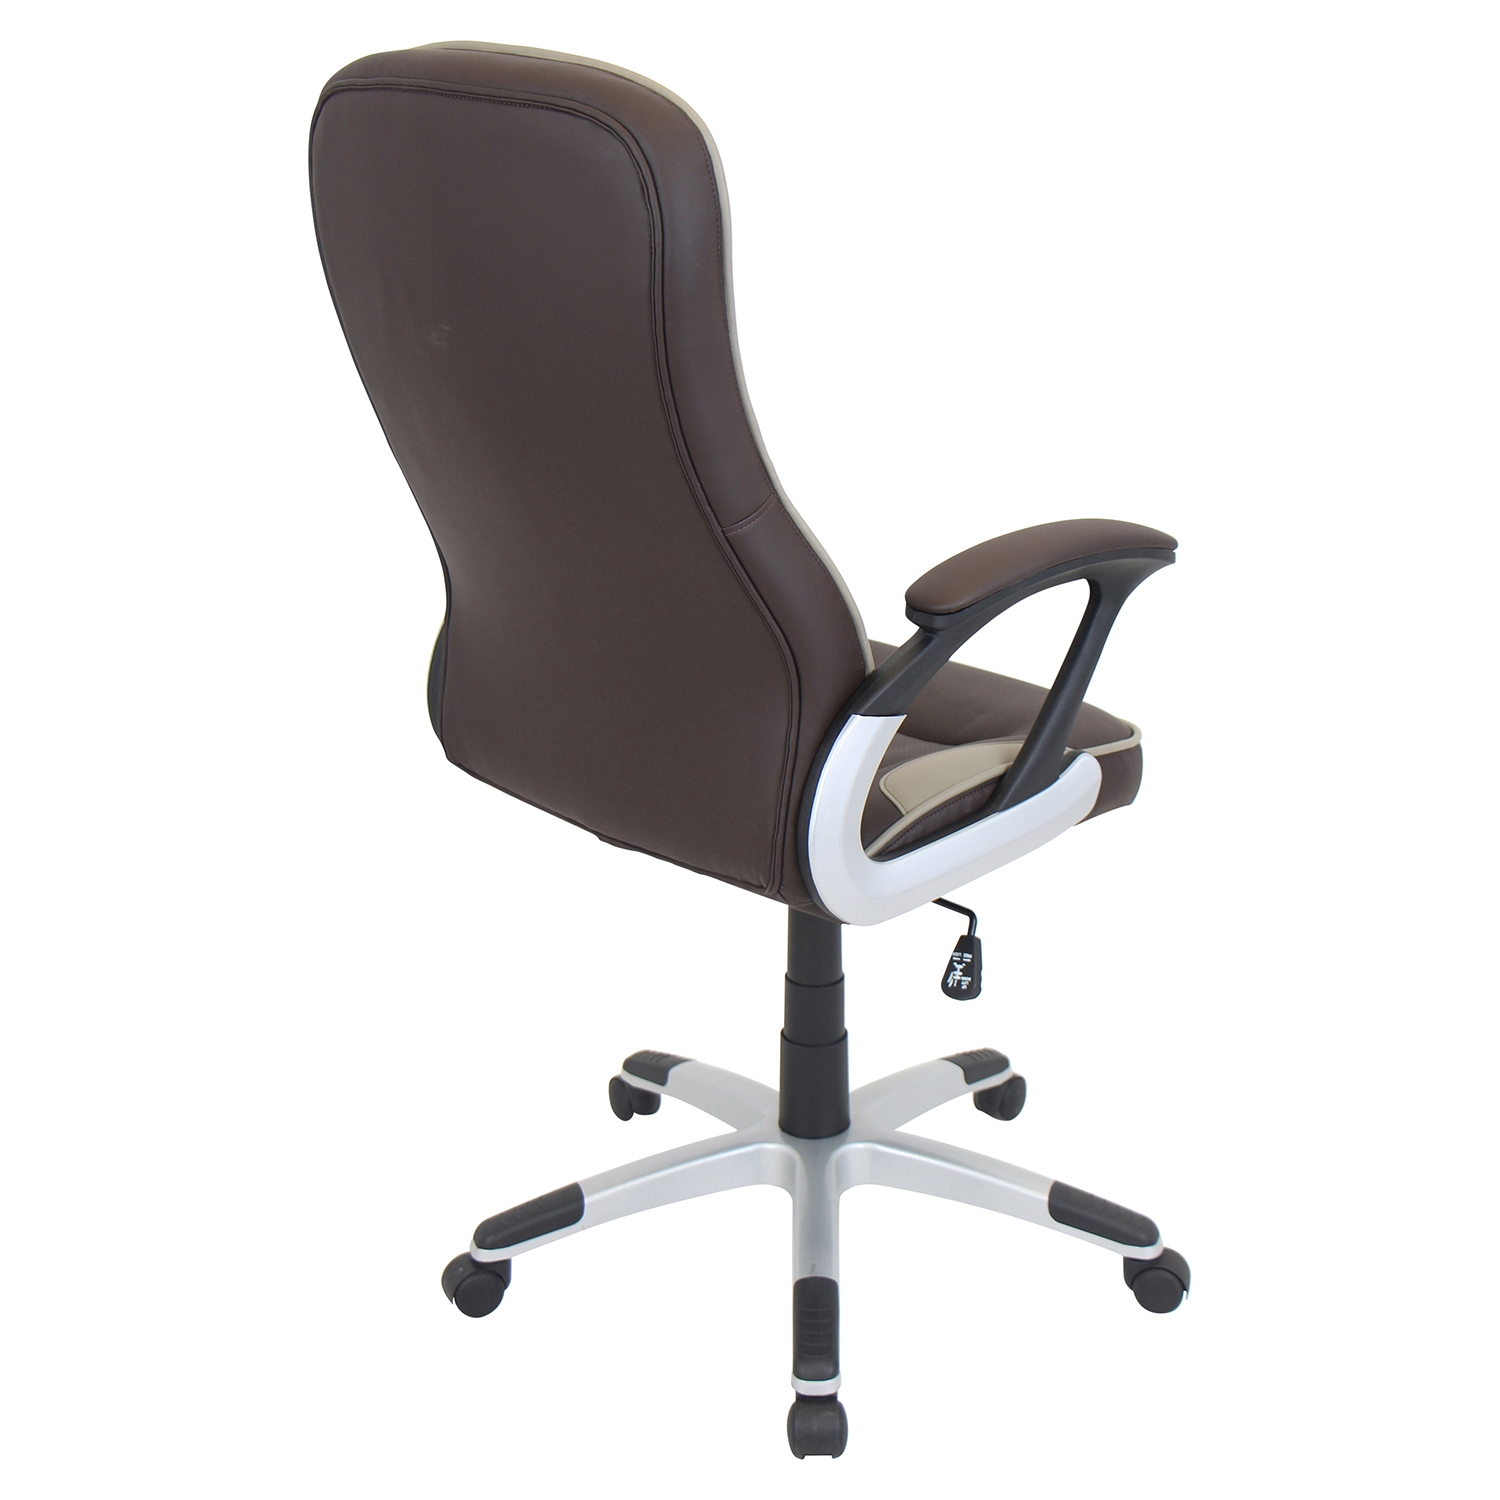 Storm Height Adjustable Office Chair - Swivel, Brown - LMS-OFC-AC-STORM-BN